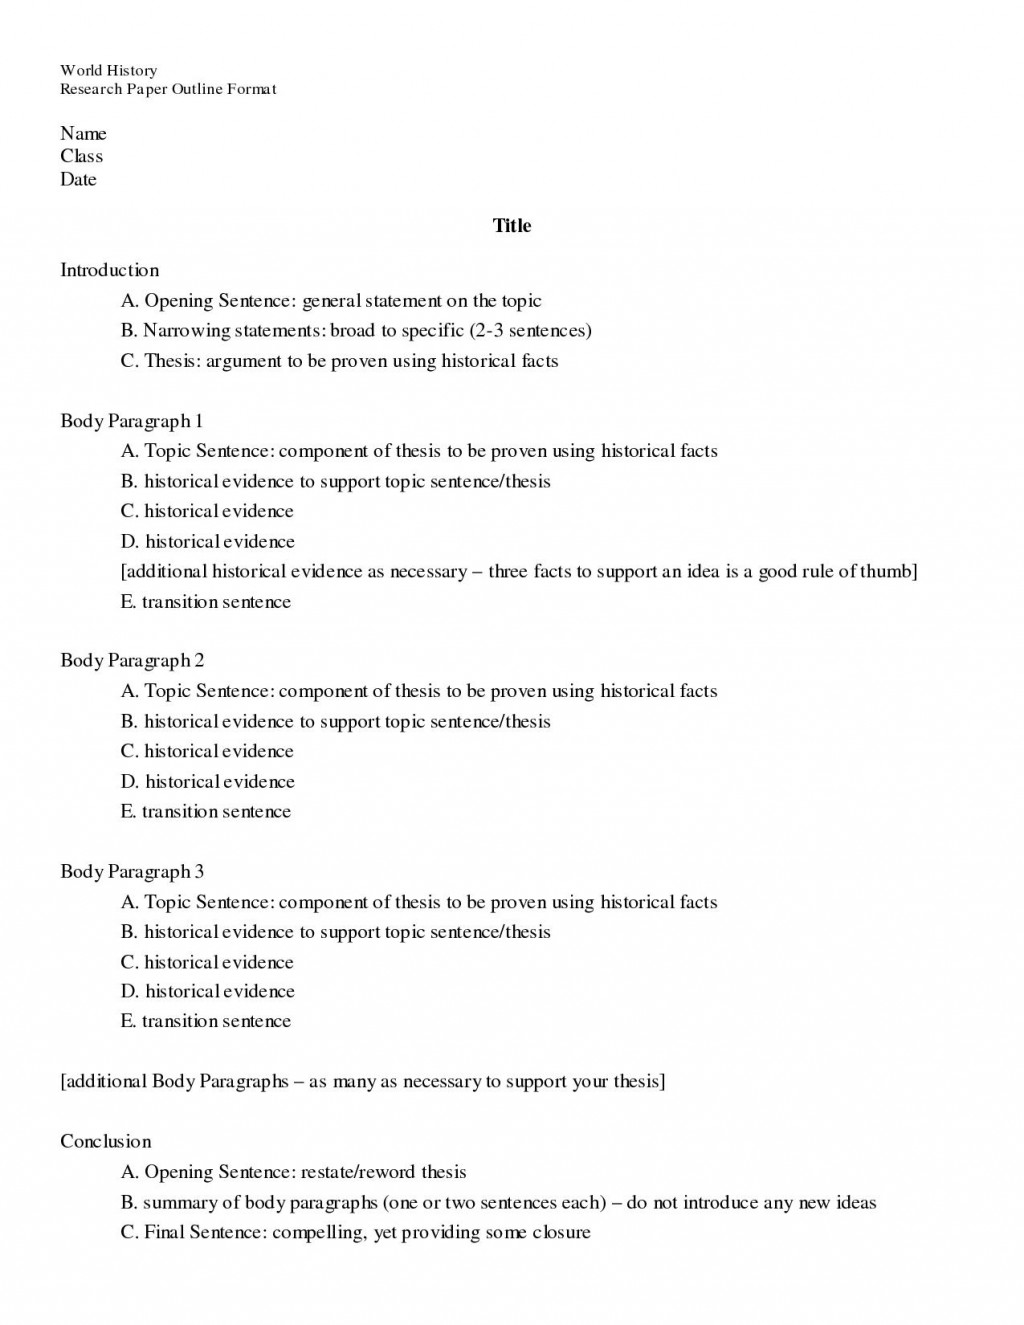 012 Biology Research Paper Template Outline Staggering Writing How To Write A Scientific Conclusion Large